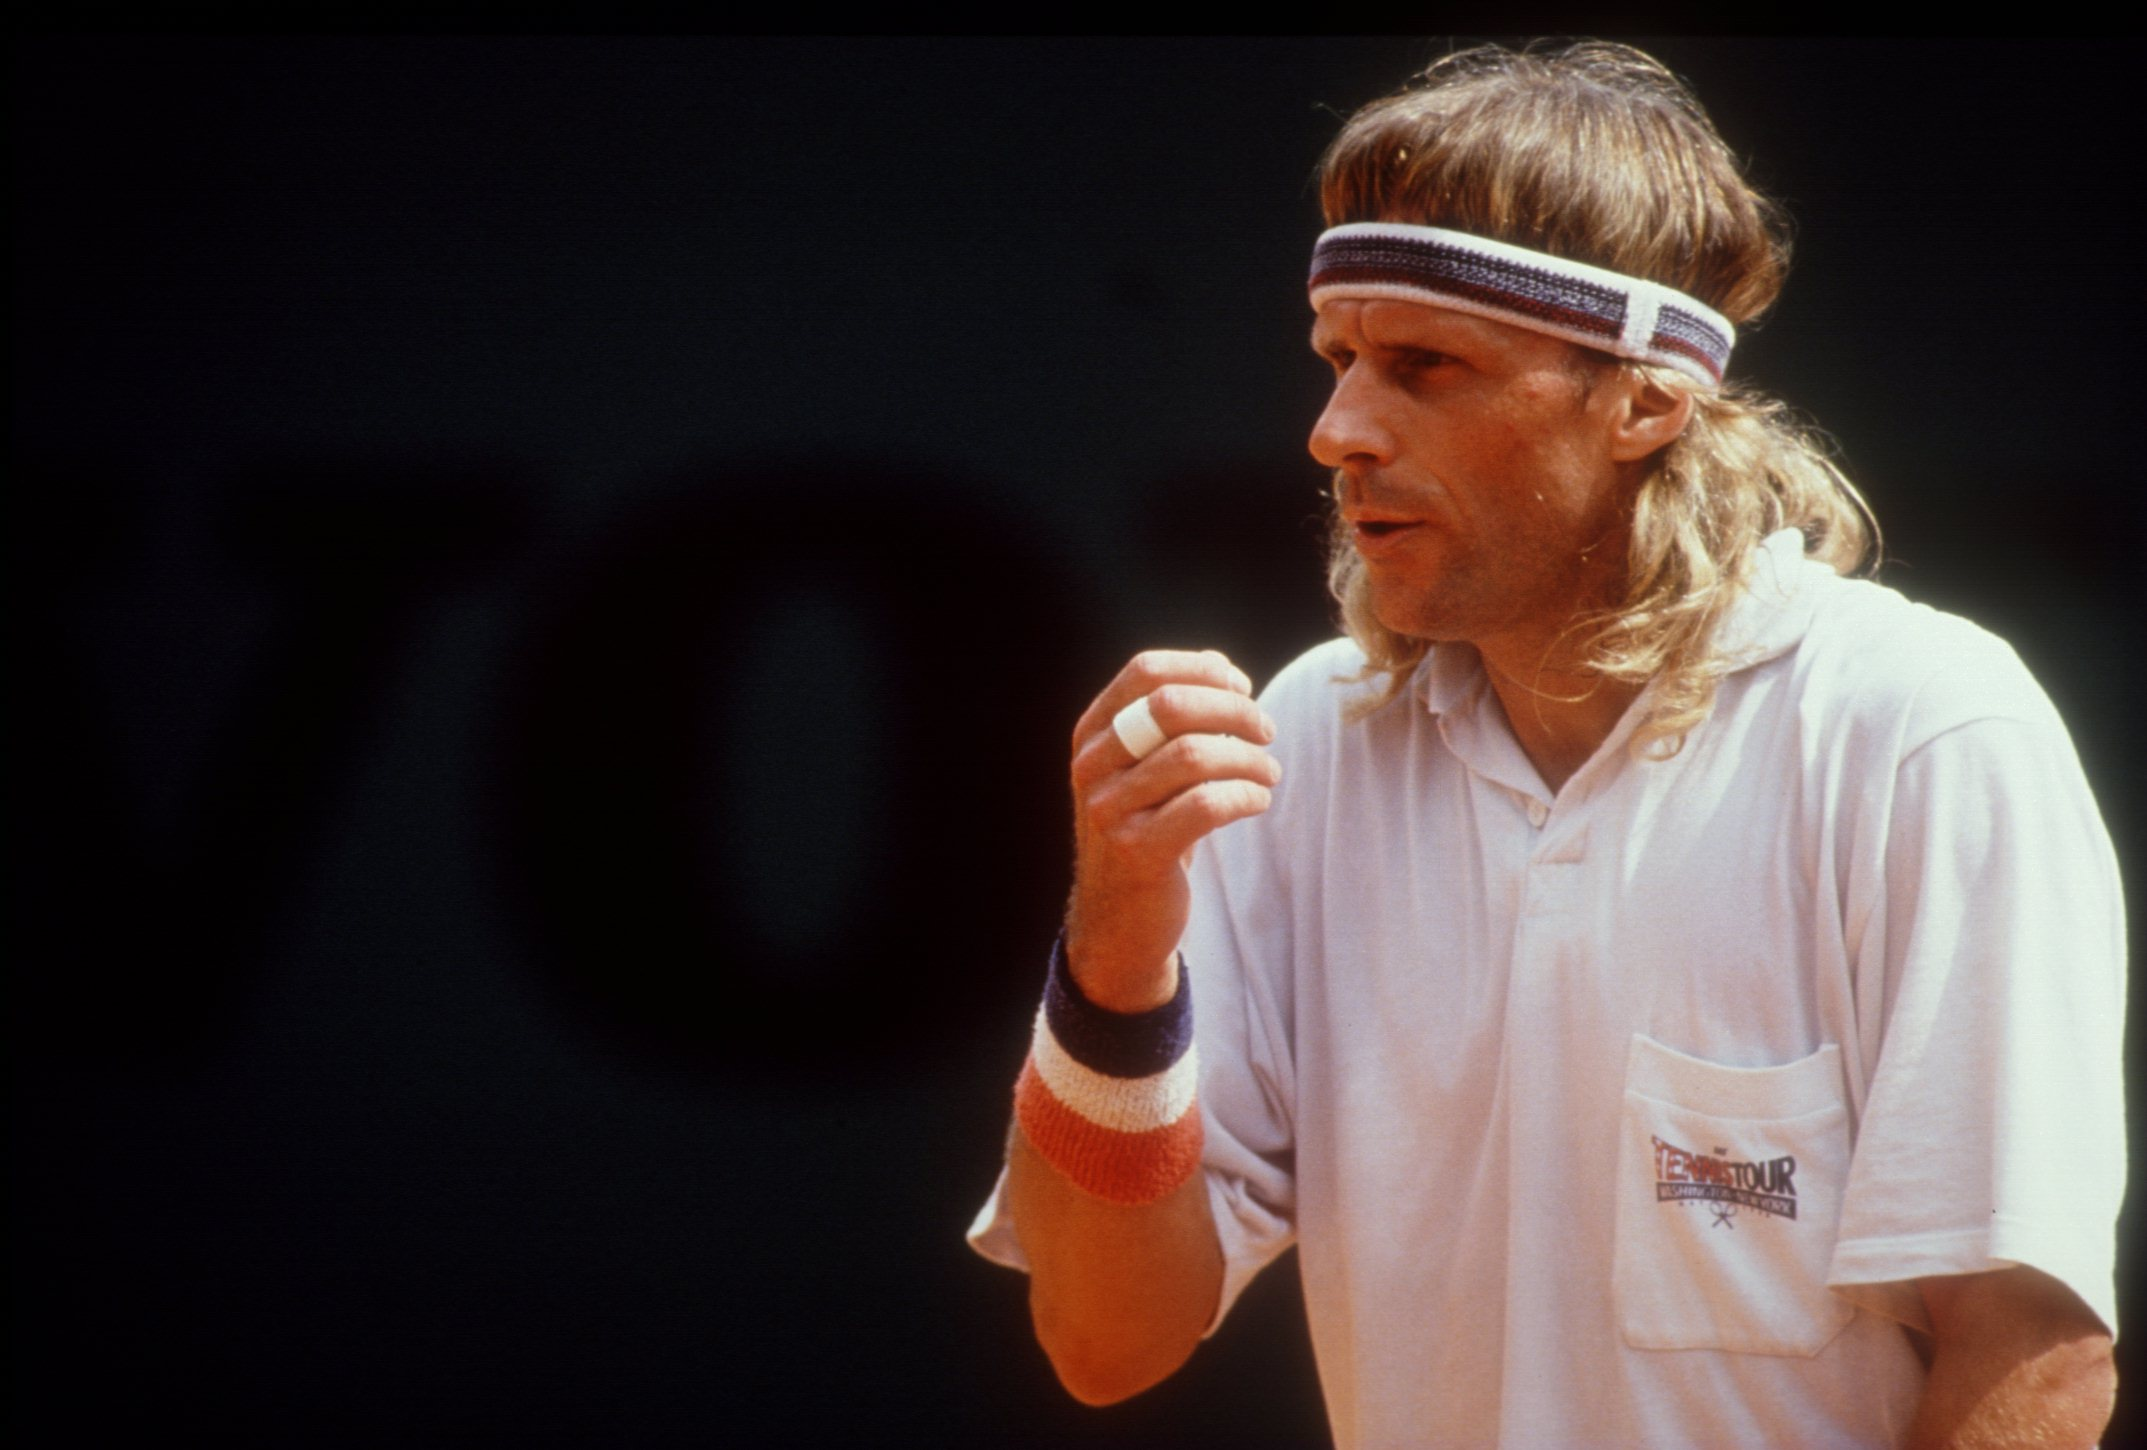 Browse bjorn borg pictures, photos, images, GIFs, and videos on Photobucket.